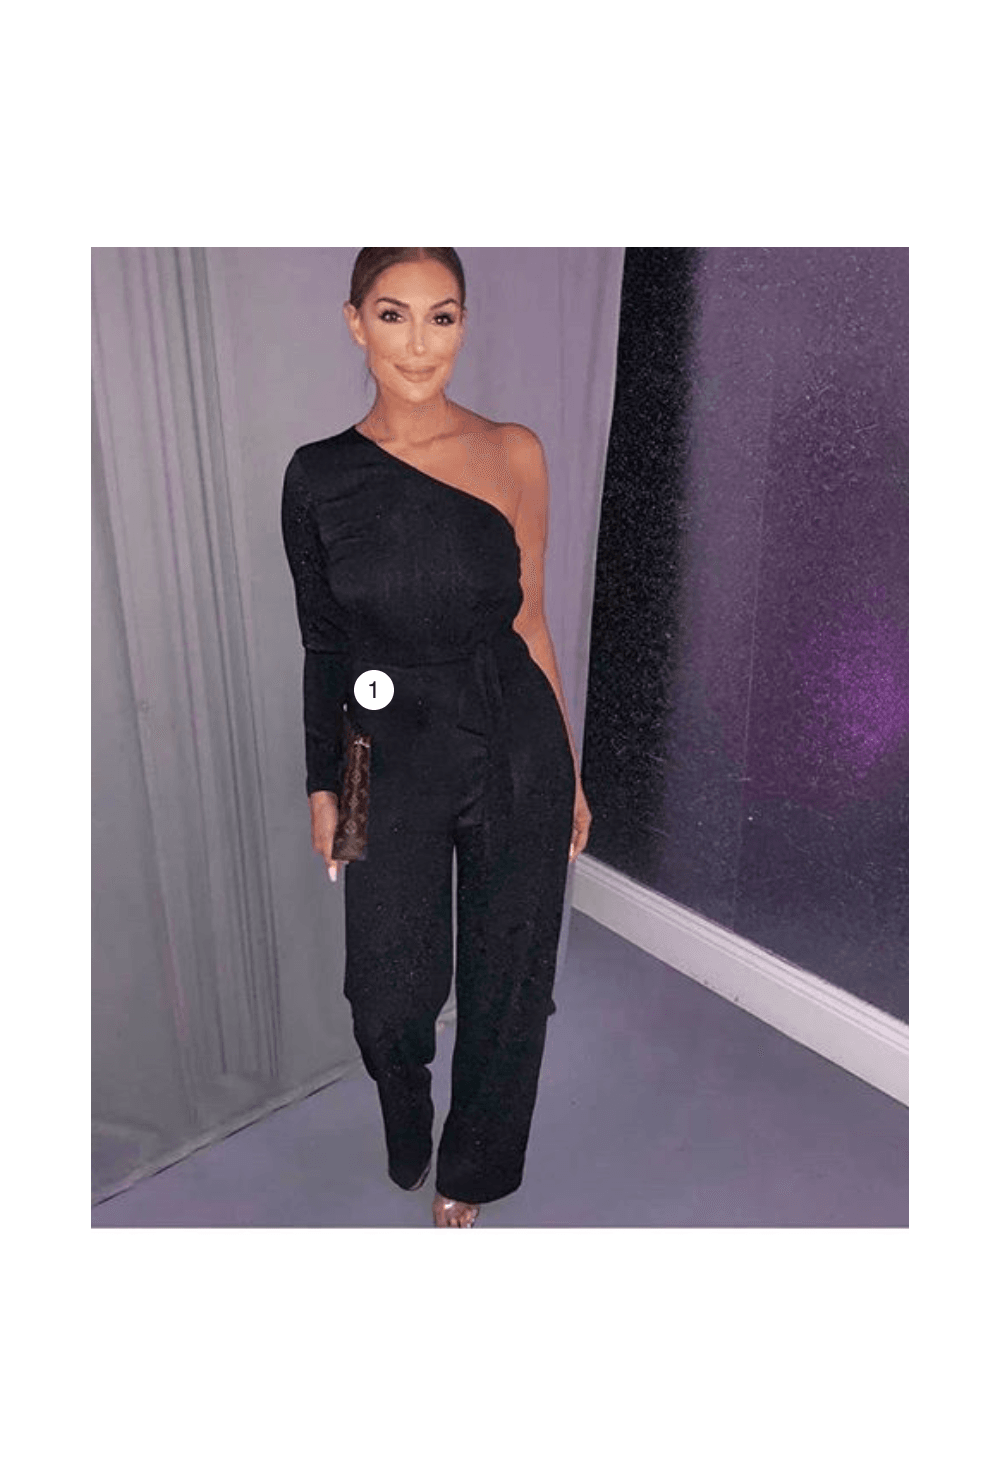 bfd877a66904 Black Glitter One Arm Jumpsuit - from Ruby Room UK